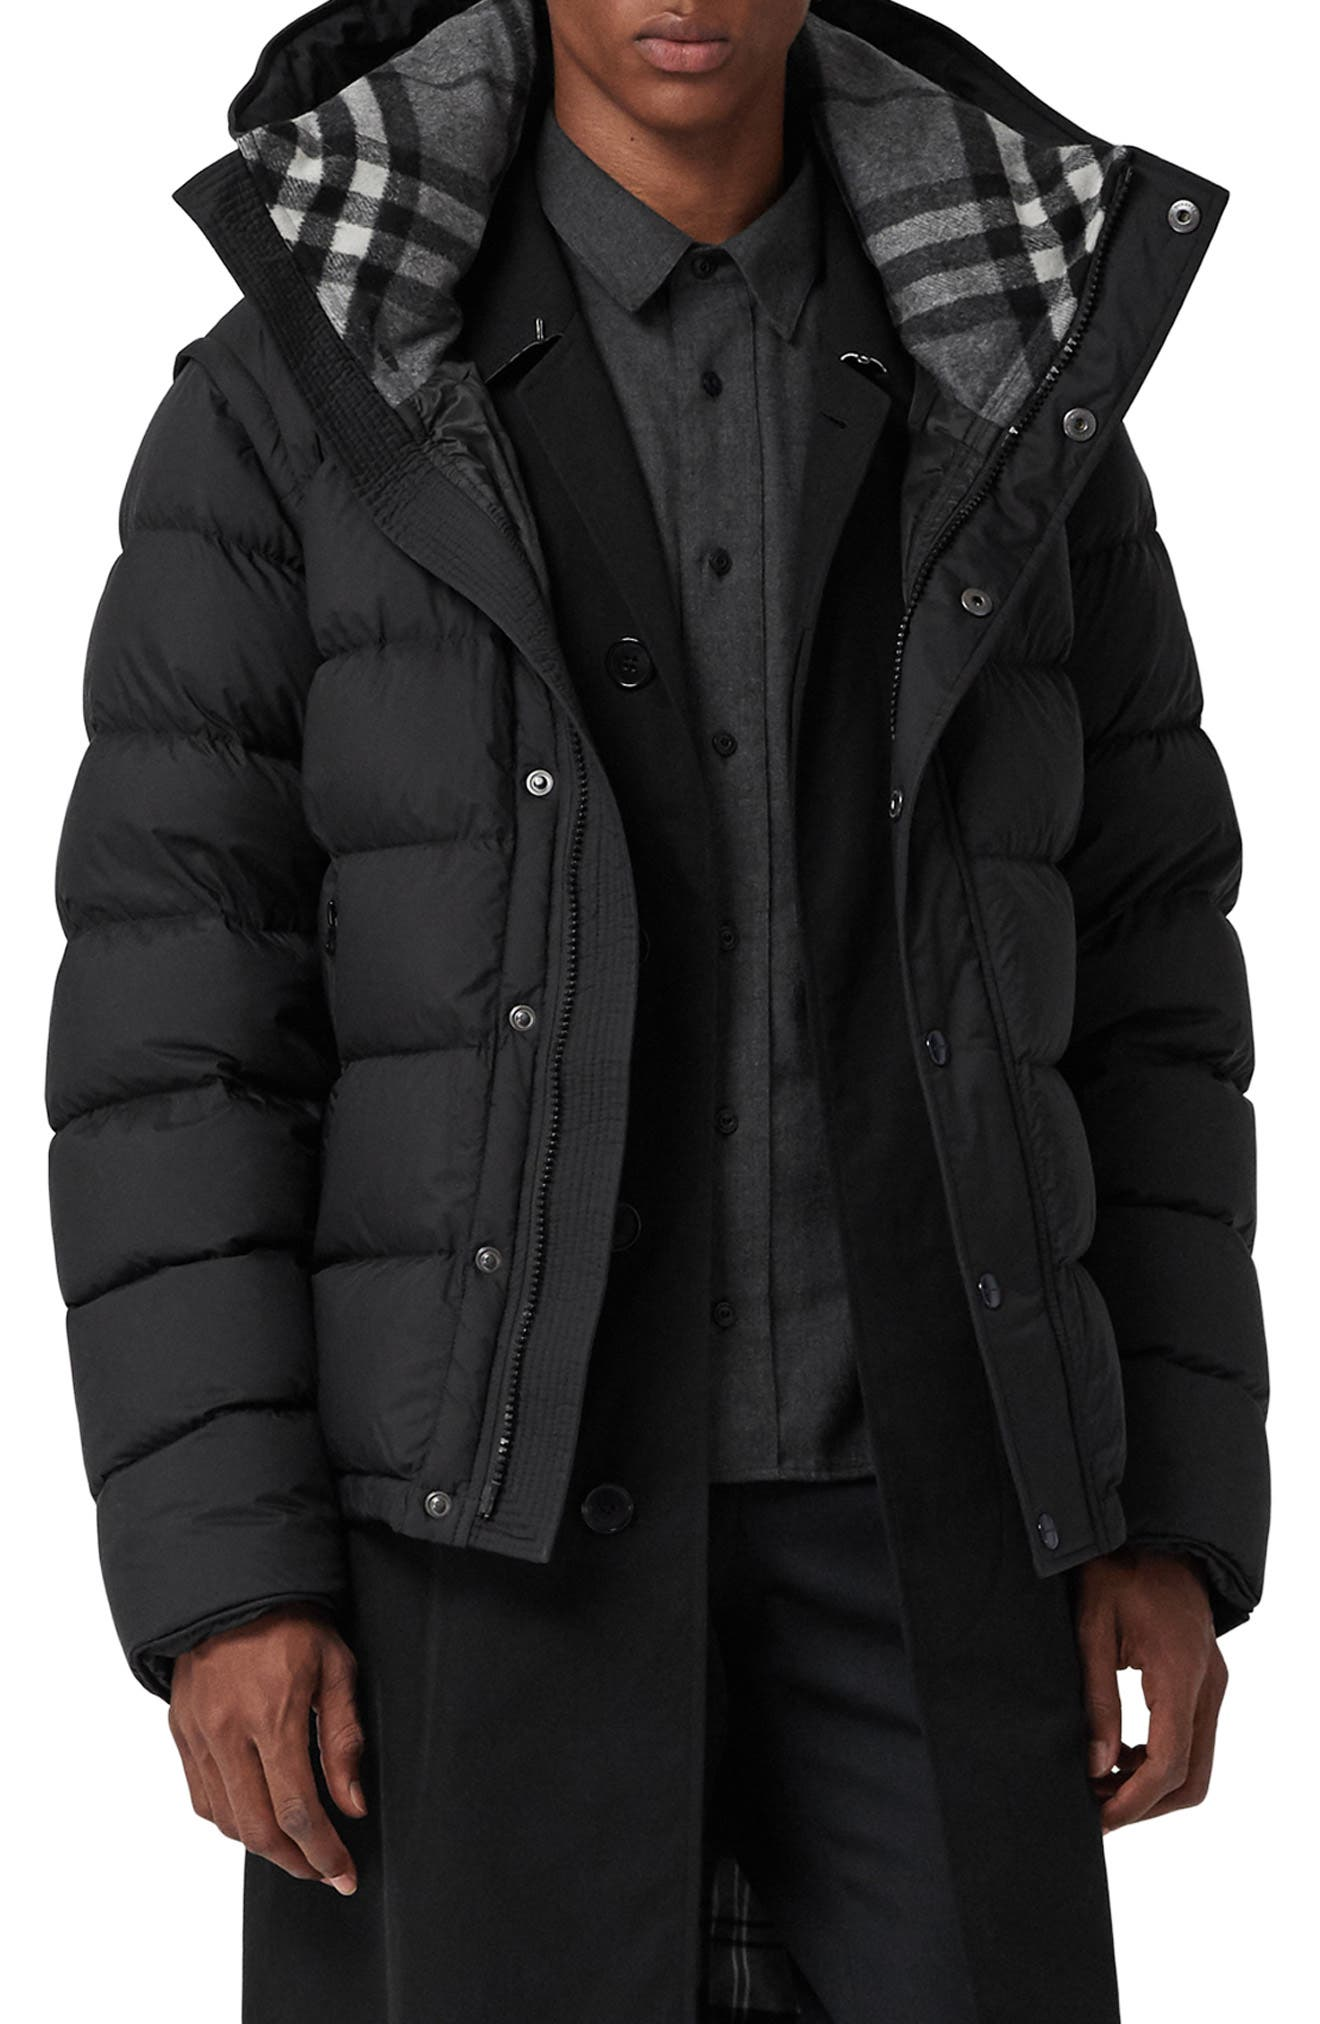 Hartley Hybrid Jacket with Detachable Sleeves,                         Main,                         color, BLACK